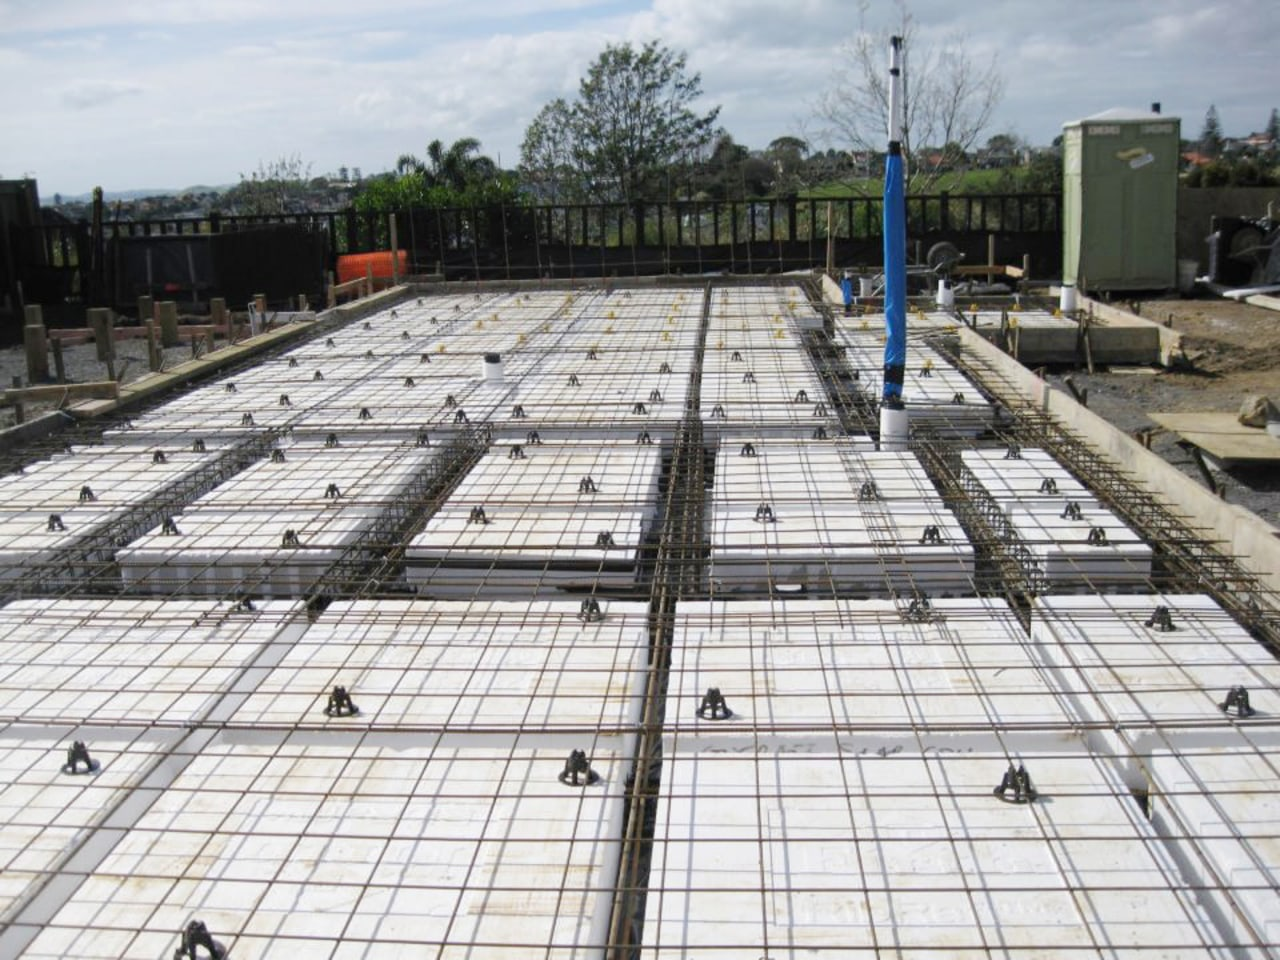 Ceiling and wall insulation with concrete pad composite material, construction, structure, white, gray